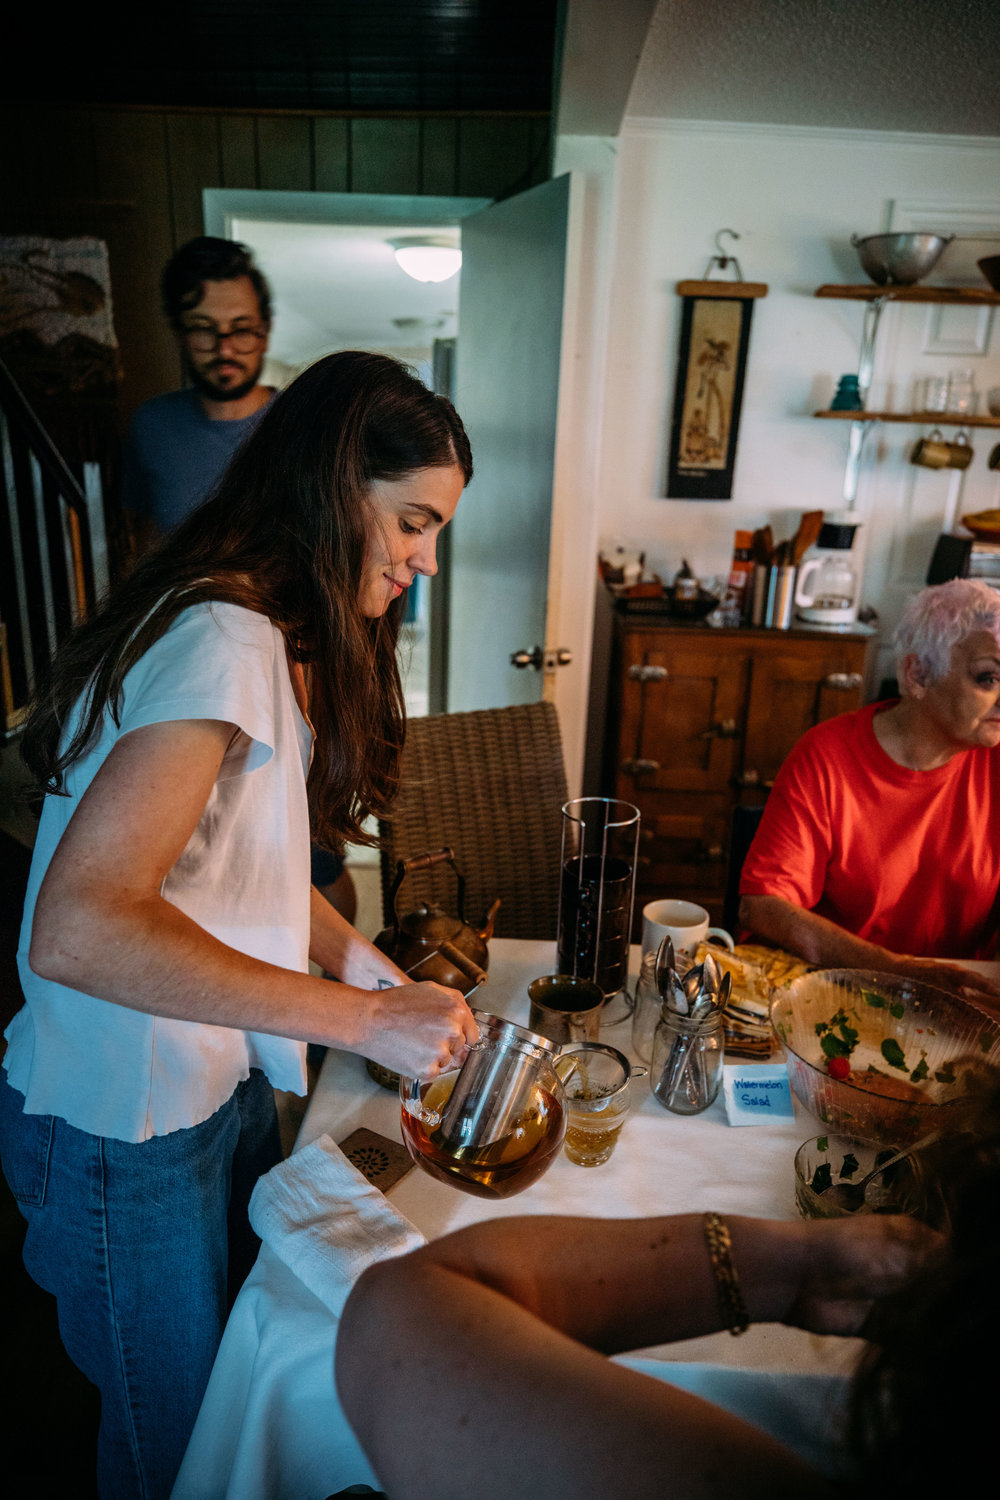 Jess Rothstein of Remedy demonstrating and sampling teas. Photo by Grace Boto.